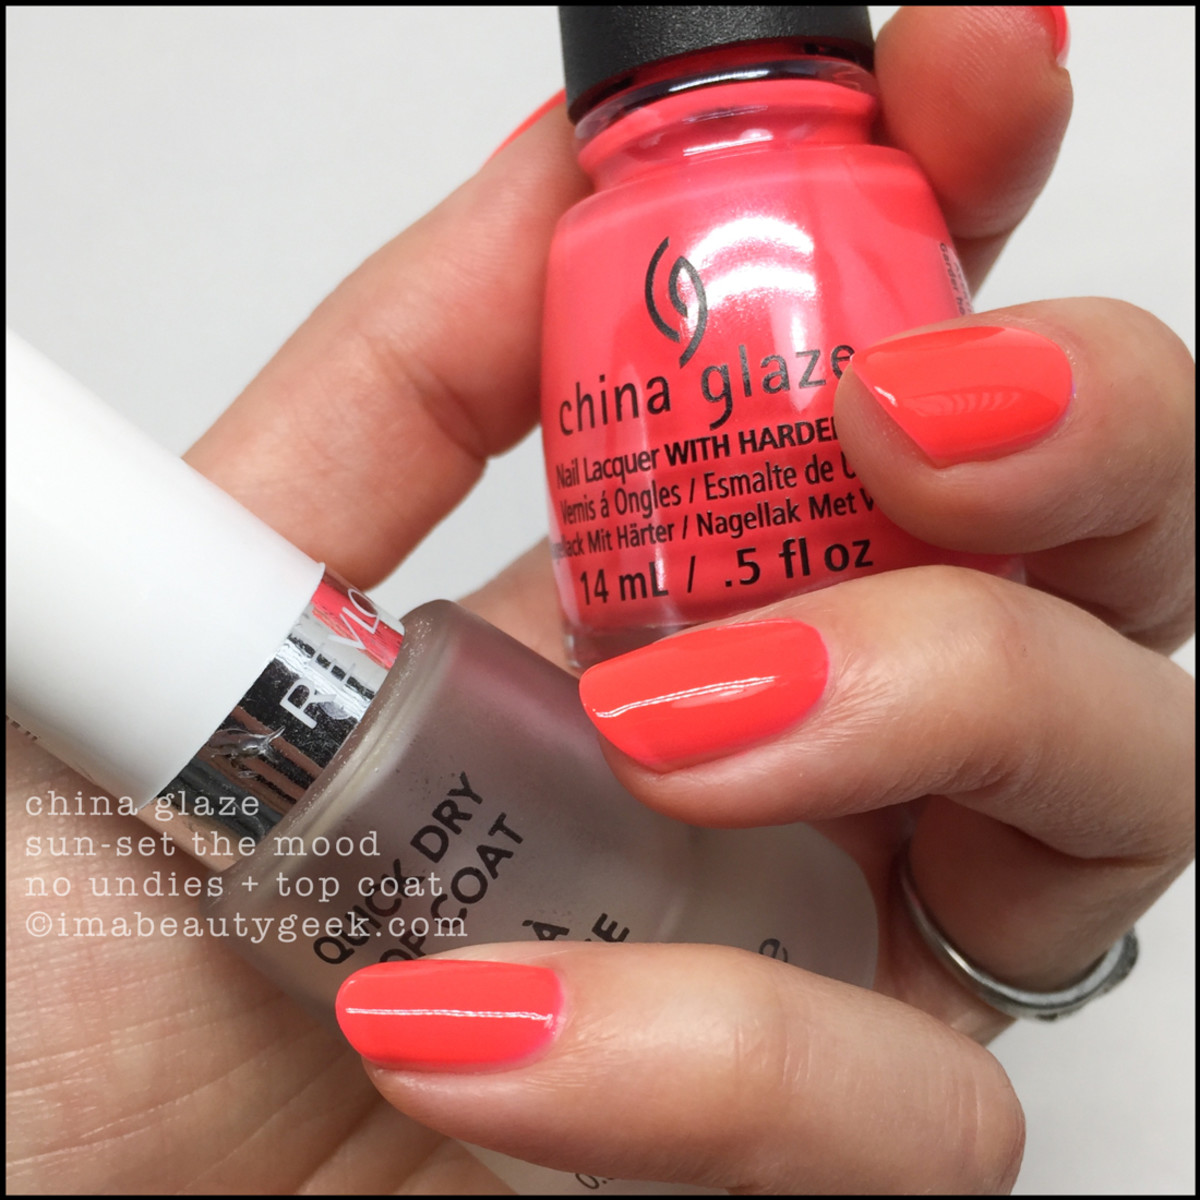 China Glaze Sunset the Mood w Top Coat